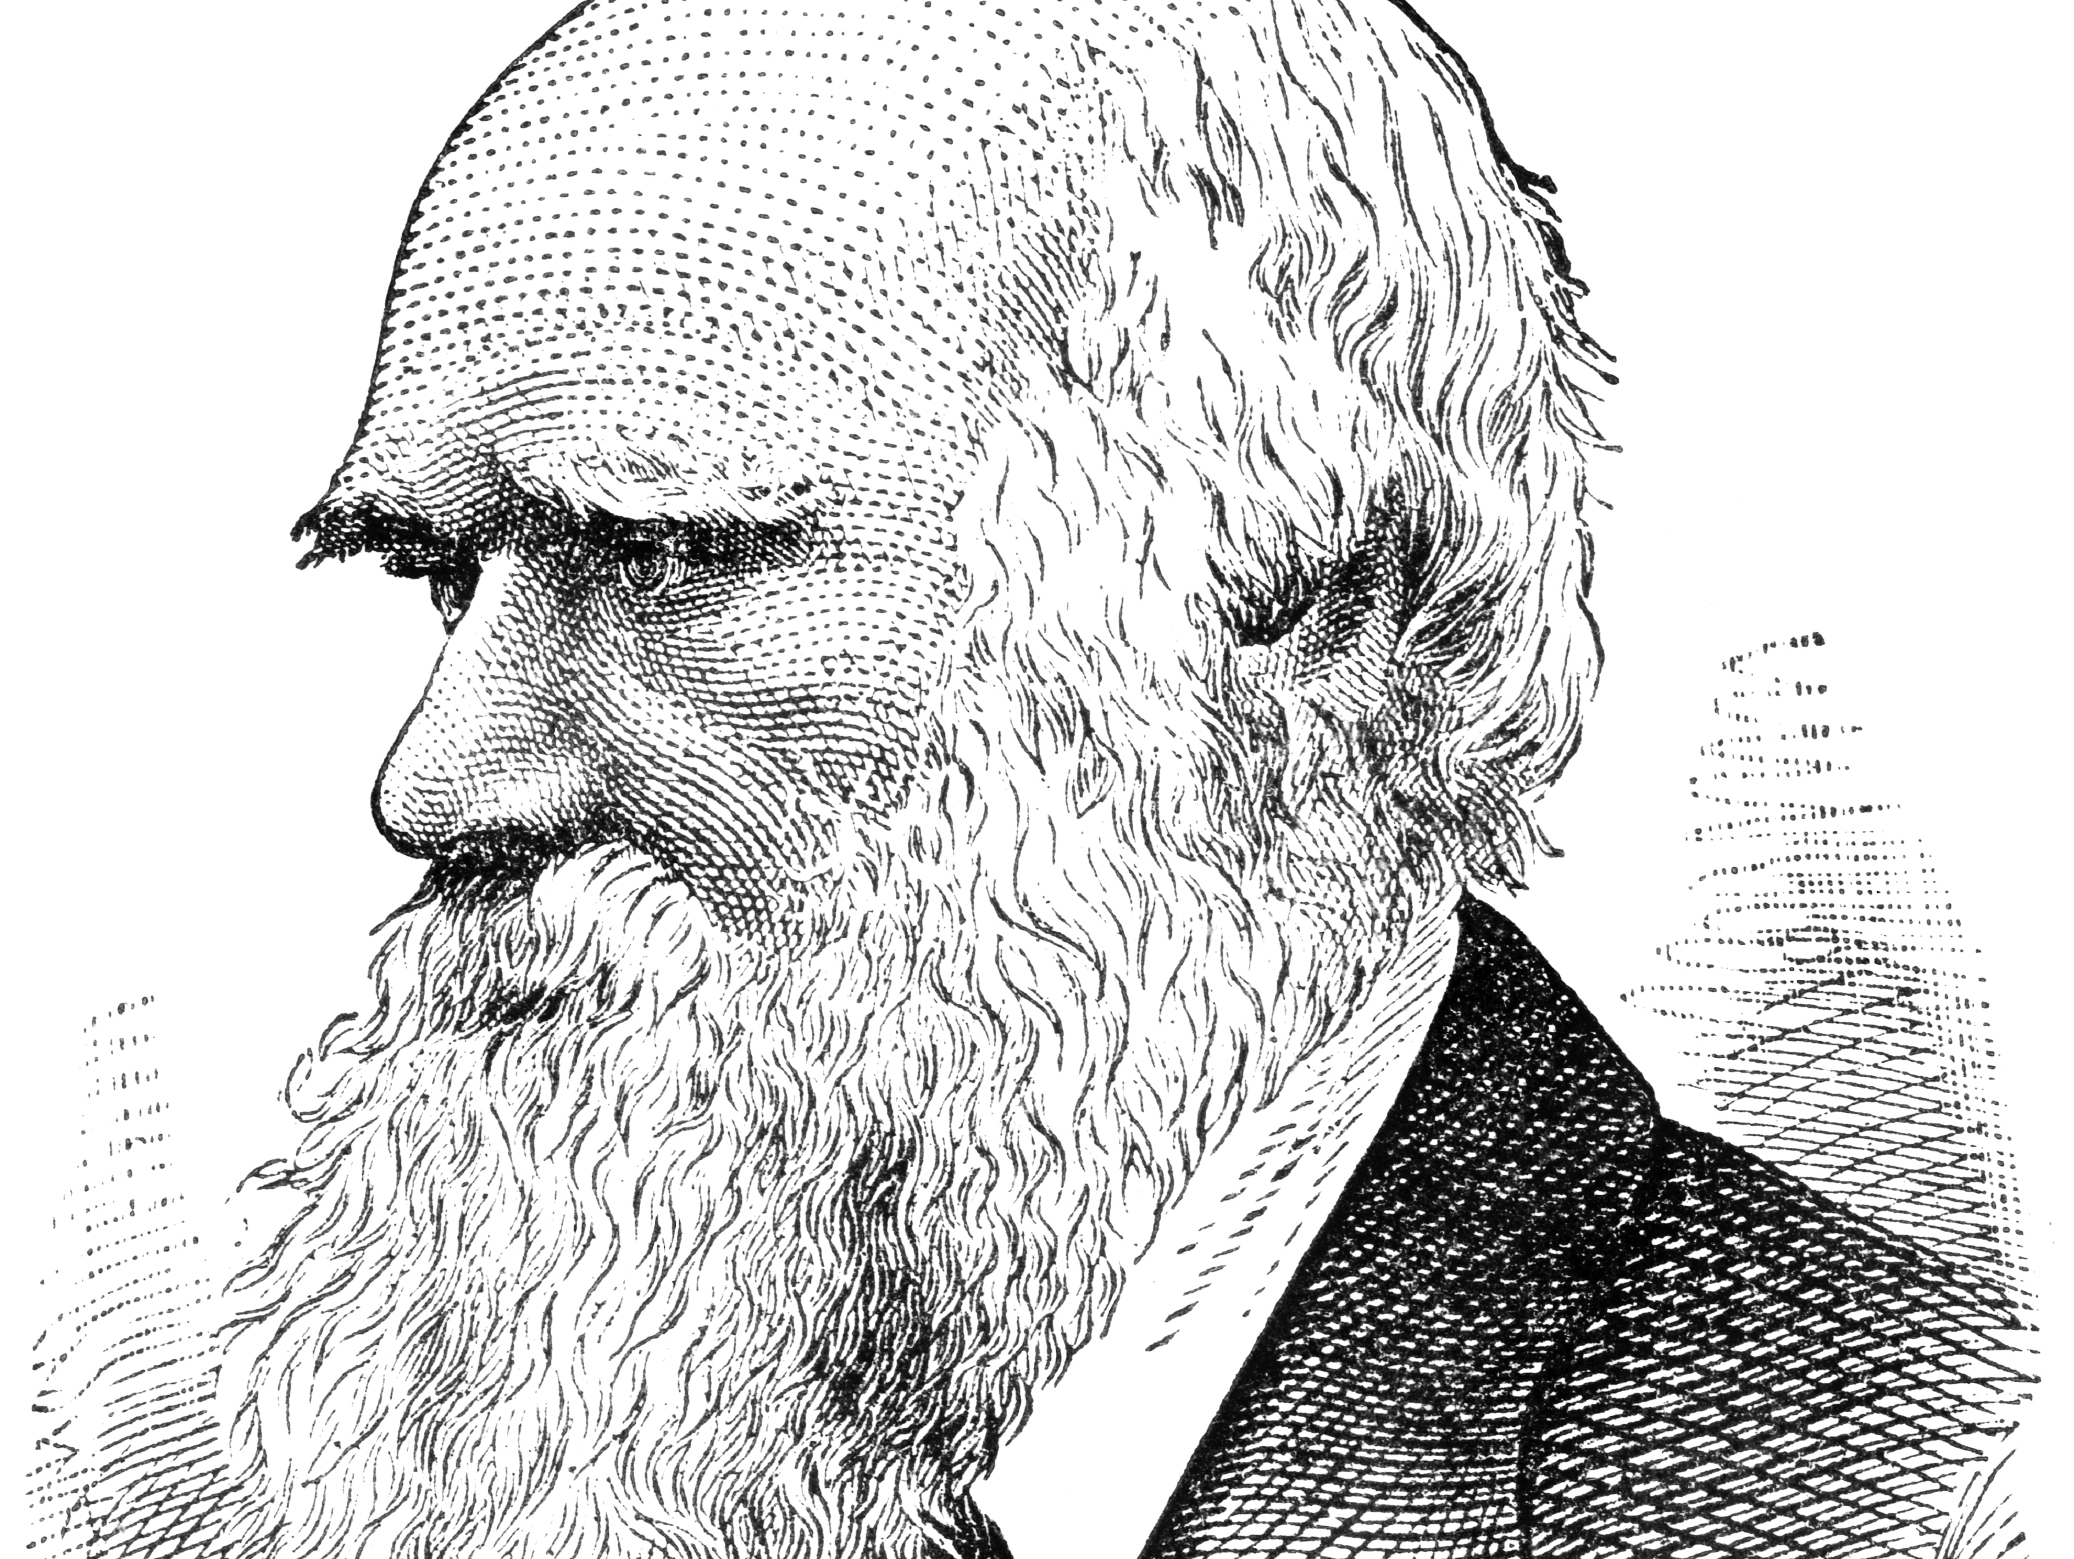 Mental Disorders And Evolution: What Would Darwin Say